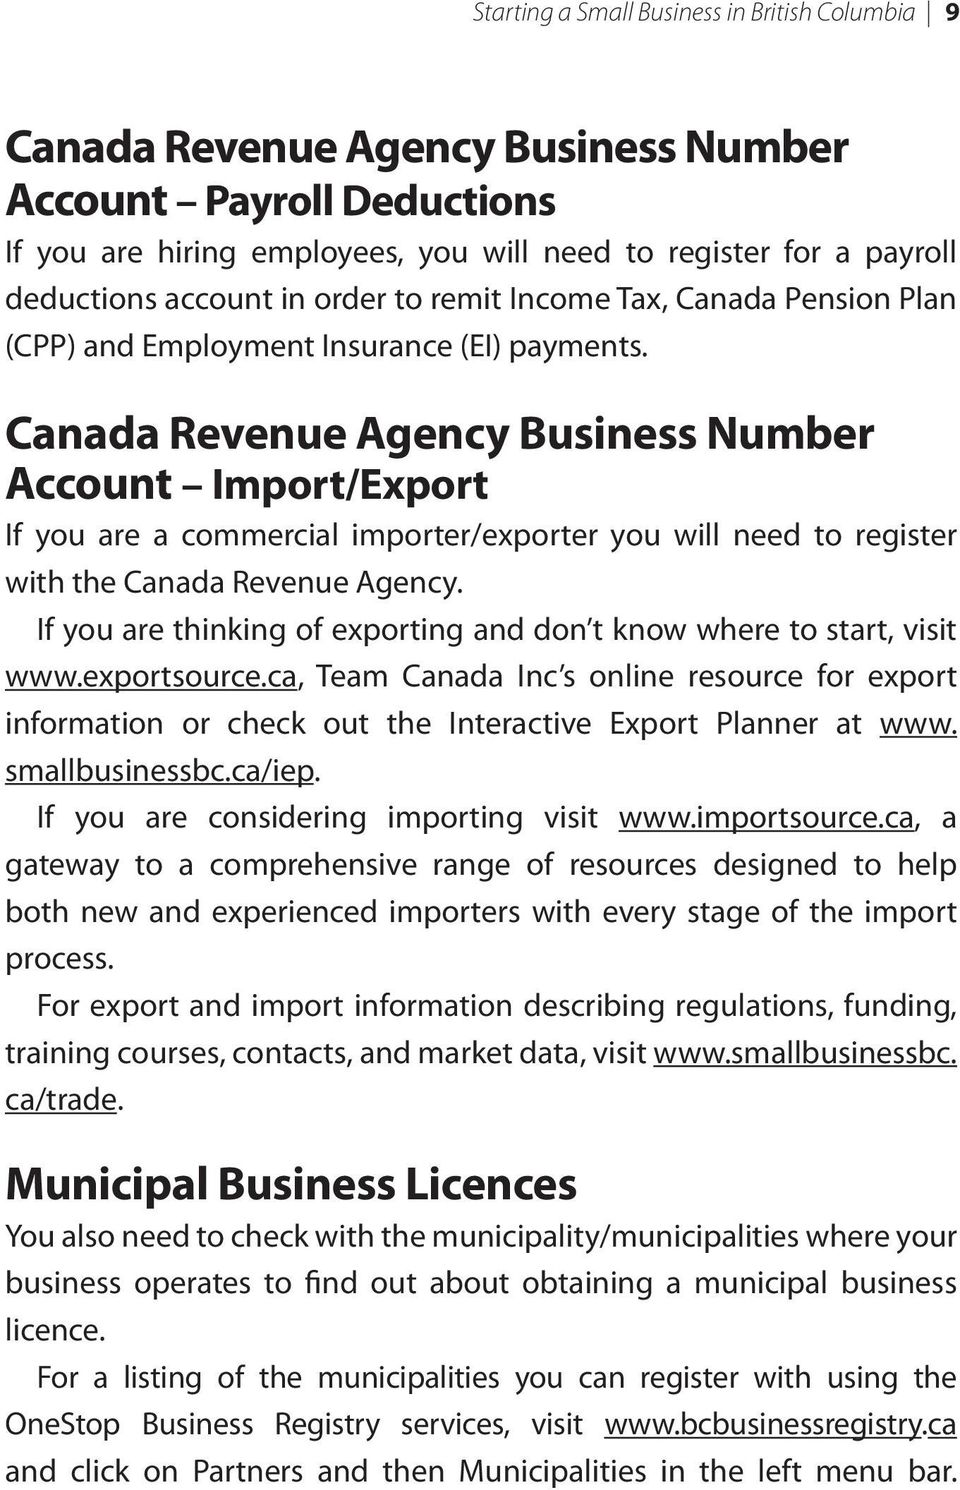 Canada Revenue Agency Business Number Account Import/Export If you are a commercial importer/exporter you will need to register with the Canada Revenue Agency.